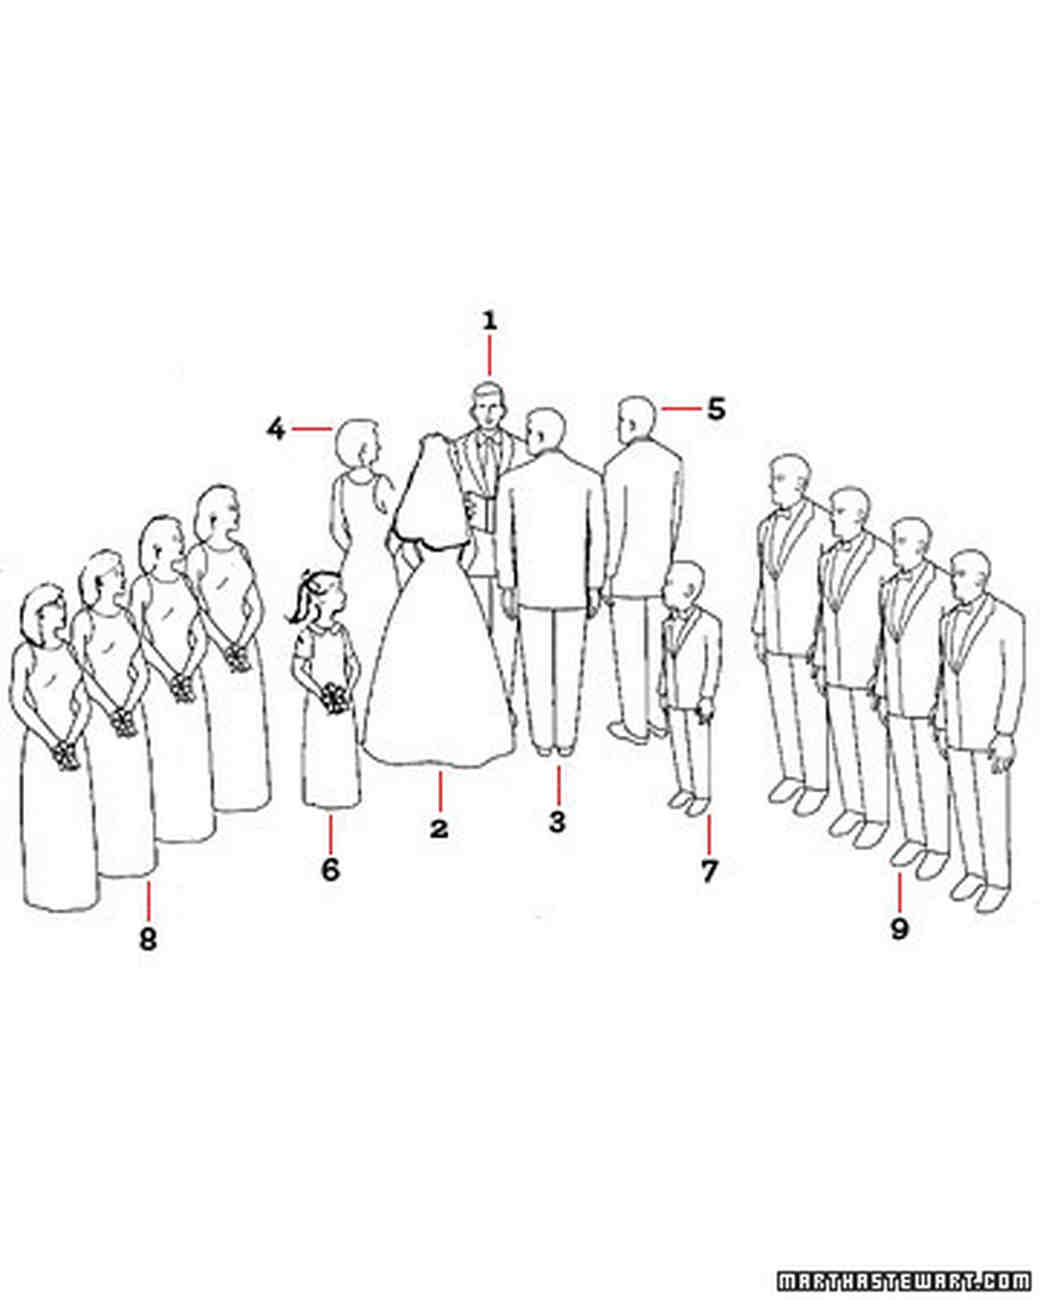 Diagram Your Big Day Christian Wedding Ceremony Basics Martha